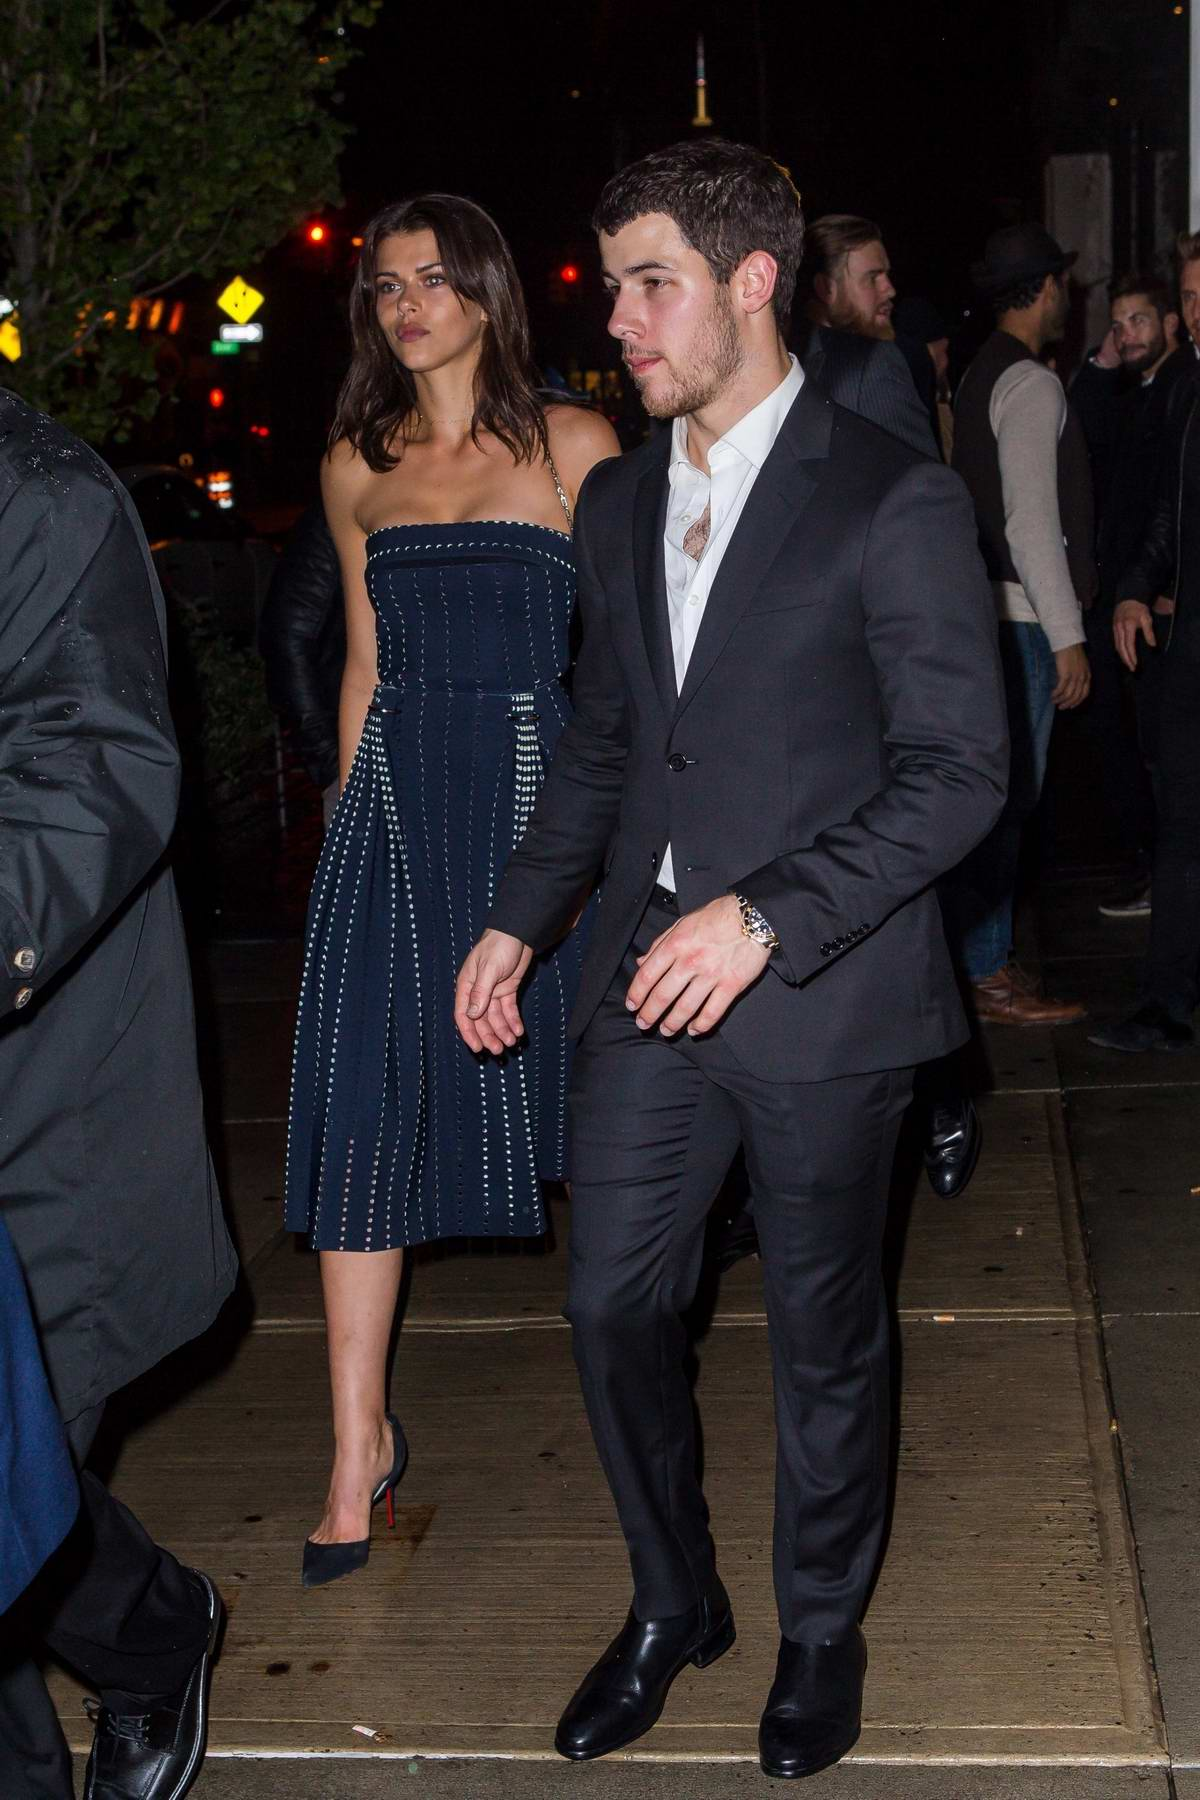 Georgia Fowler and Nick Jonas leaving Joe Jonas and Sophia Turner's engagement party in New York